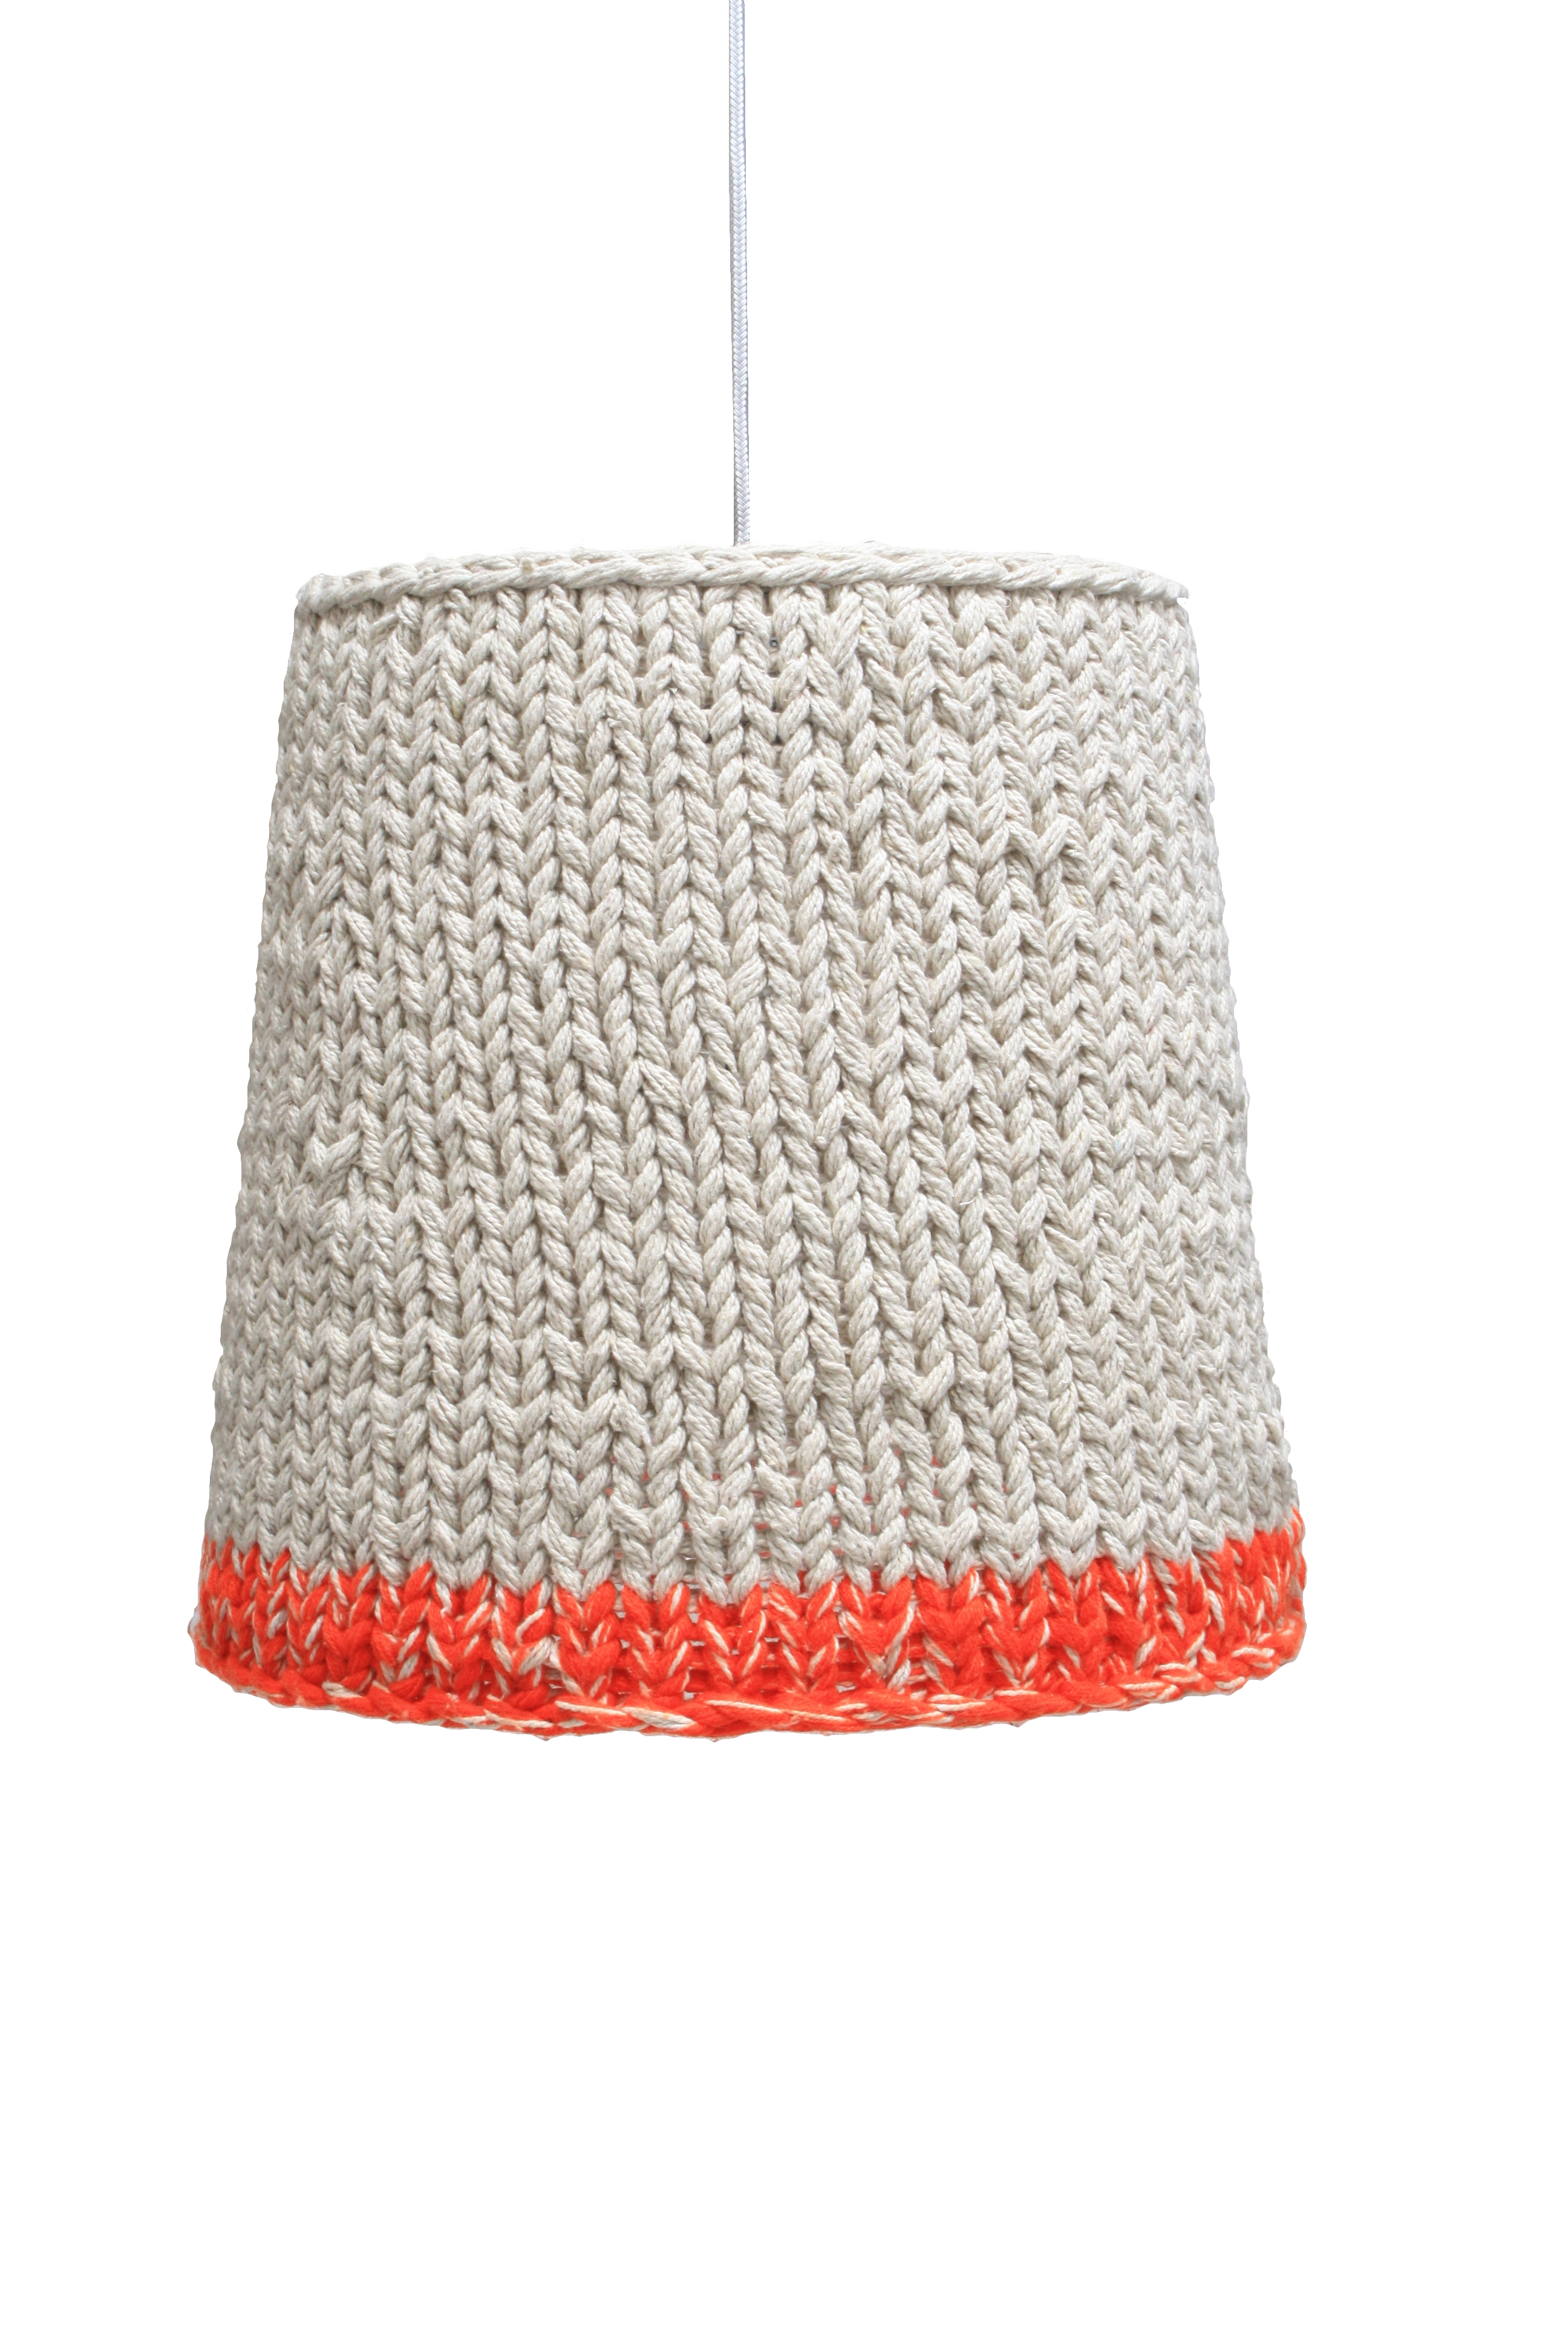 Knitted Orange Neon Could Do This Idea With My Old Lamp Shade And Add Fringe Of Some Kind Knitting Blogs Knitting Wool Knitting